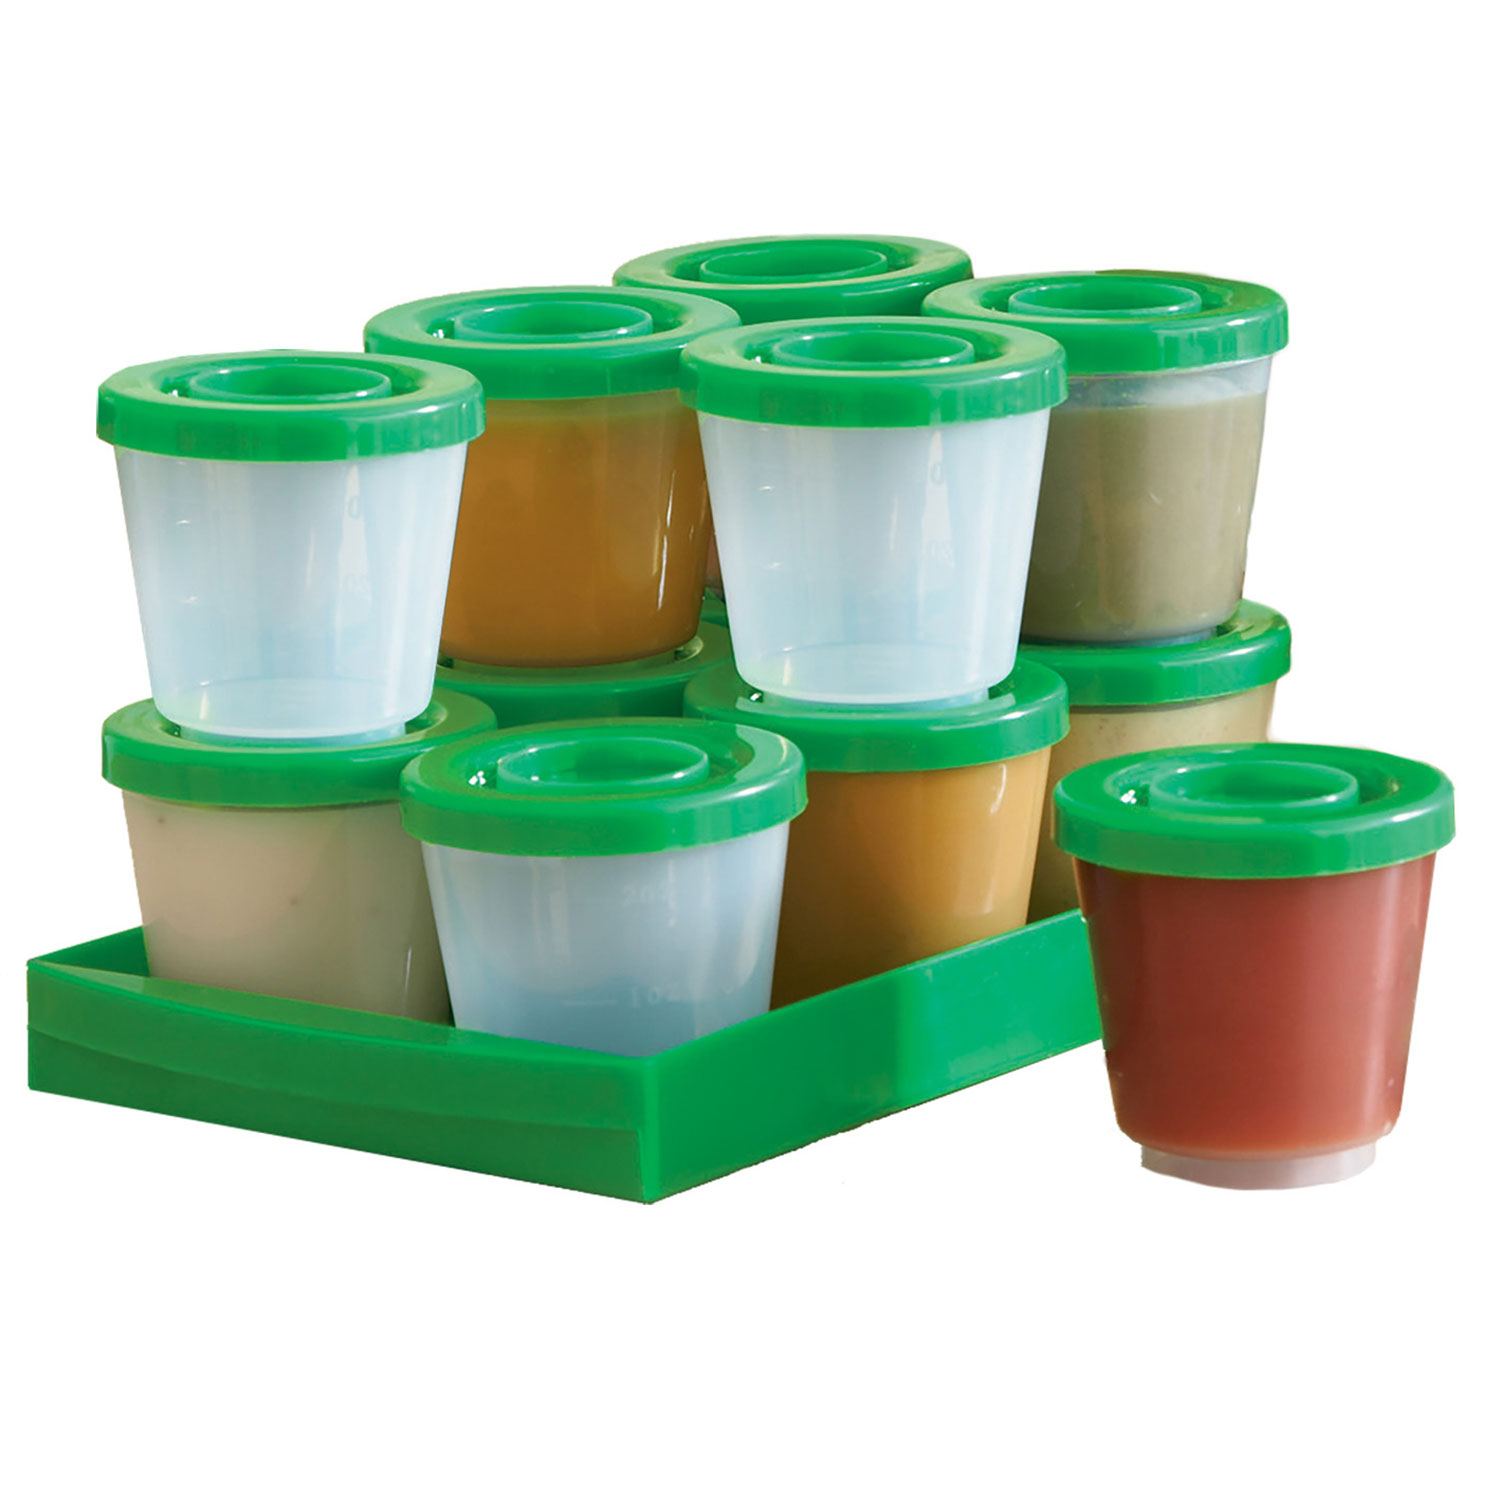 One Step Ahead Baby Food Containers - Safe for Freezer, Dishwasher, Microwave - Fresh N Freeze 2 Ounce Storage Container 12-Pack